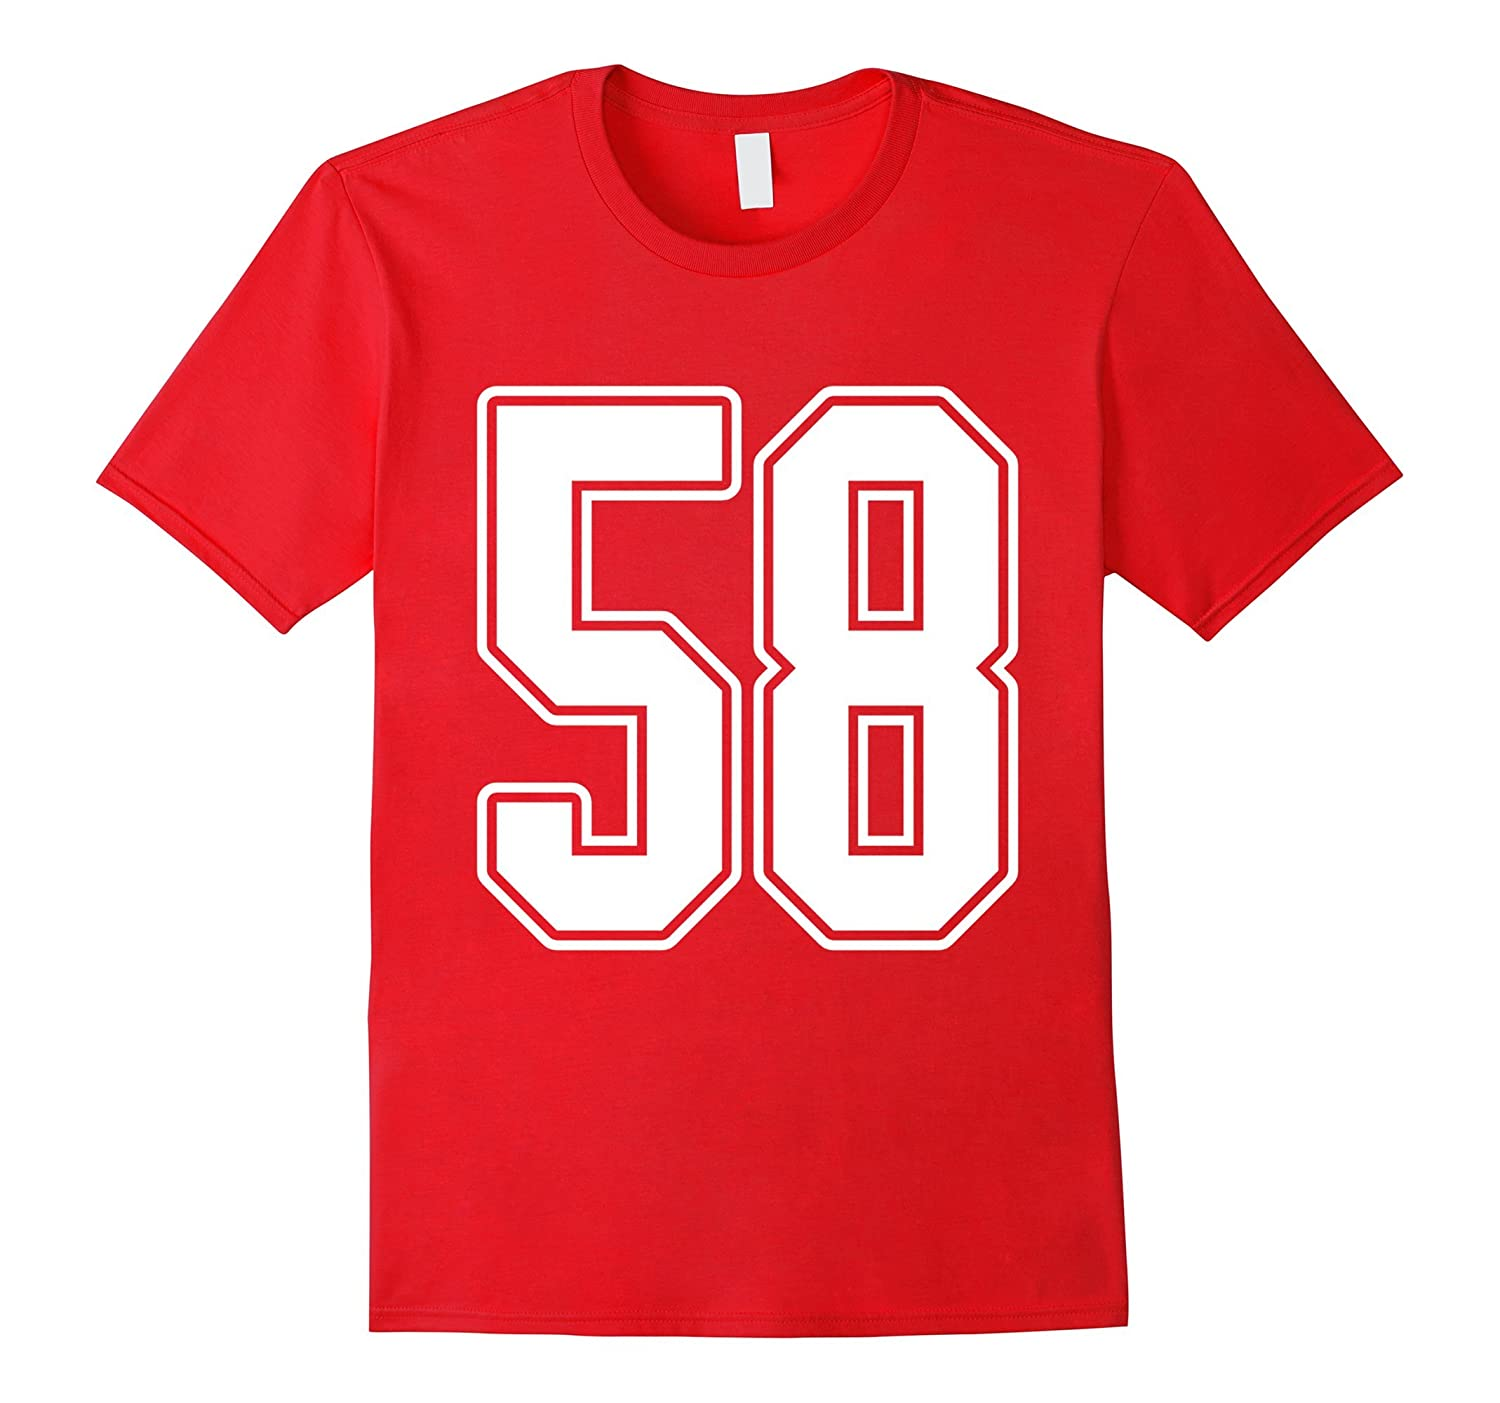 #58 White Outline Number 58 Sports Fan Jersey Style T-Shirt-T-Shirt